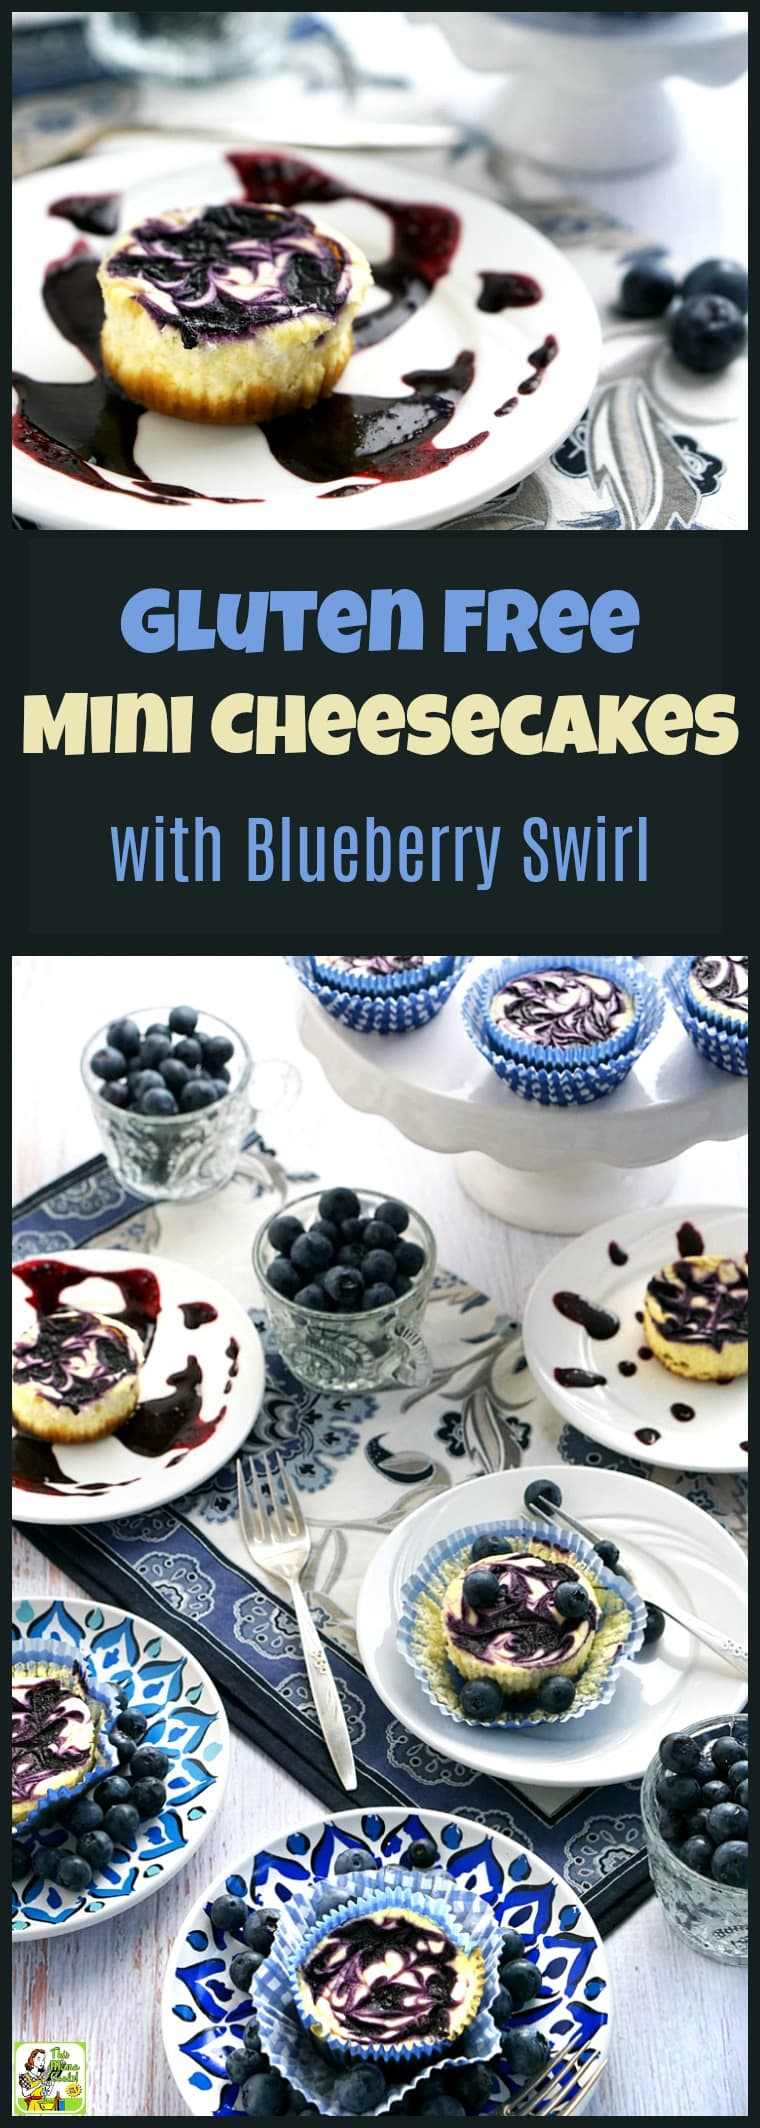 Gluten Free Mini Cheesecake with Blueberry Swirl is a guilt-free dessert recipe because they\'re made with blueberries, non-fat Greek yogurt, low-fat cream cheese & monk fruit sweetener. This gluten-free mini cheesecake recipe is the ideal dessert for parties & tailgating! #recipe #easy #recipeoftheday #healthyrecipes #glutenfree #easyrecipes #snack #snacks #dessert #dessertrecipes #blueberries #cheesecake #cupcakes #cupcake #baking #party #partyfood #tailgating #entertaining